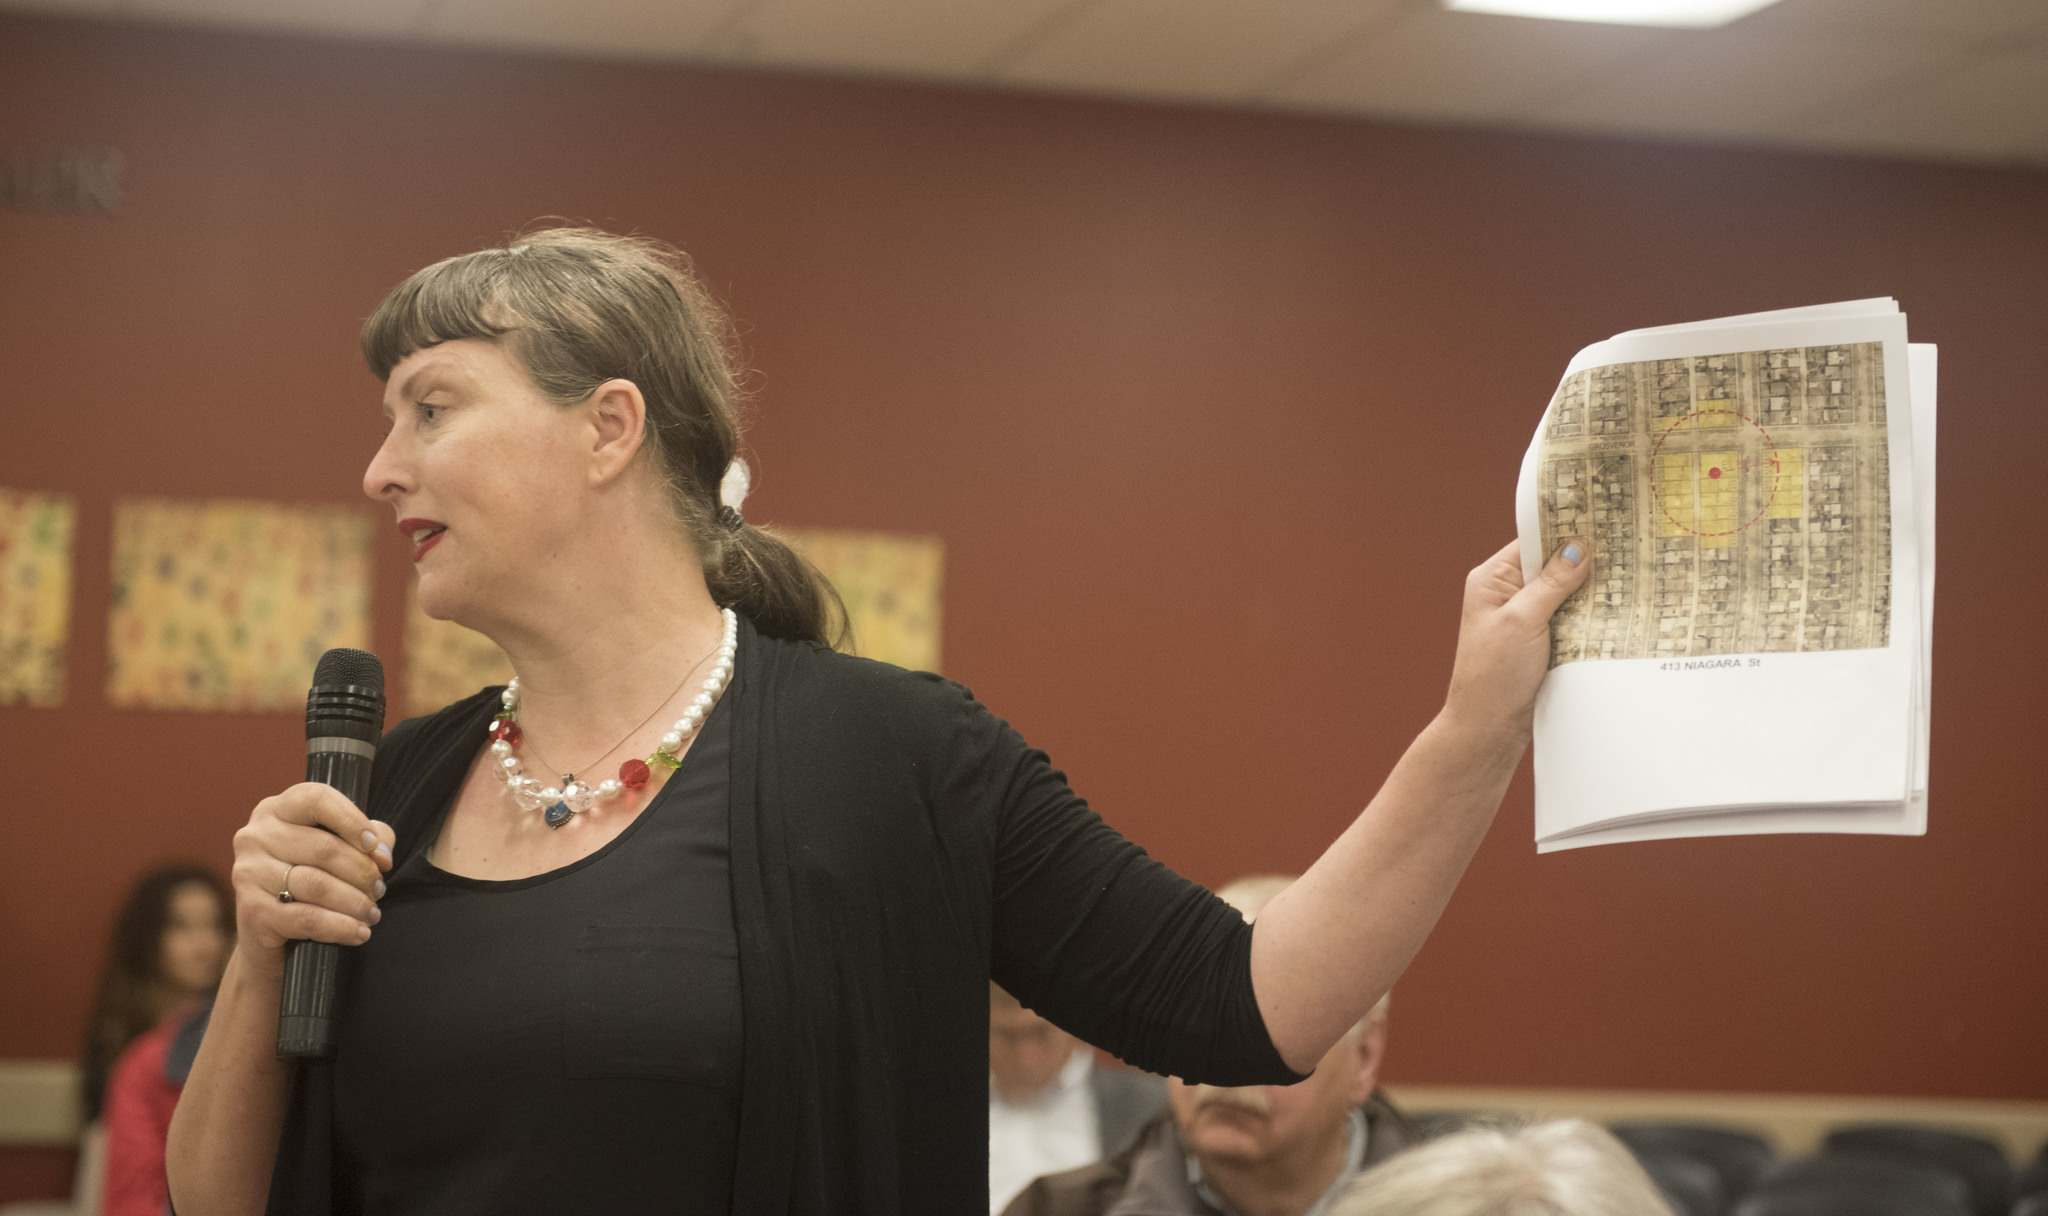 DAVID LIPNOWSKI / WINNIPEG FREE PRESS</p><p>Local River Heights resident Abigail Mickelthwate voices her concerns about a proposed cell phone tower in her area during a town hall meeting with The Hon. Jim Carr, MP for Winnipeg South Centre and minister of Natural Resources at the Radi Centre Wednesday night.</p>